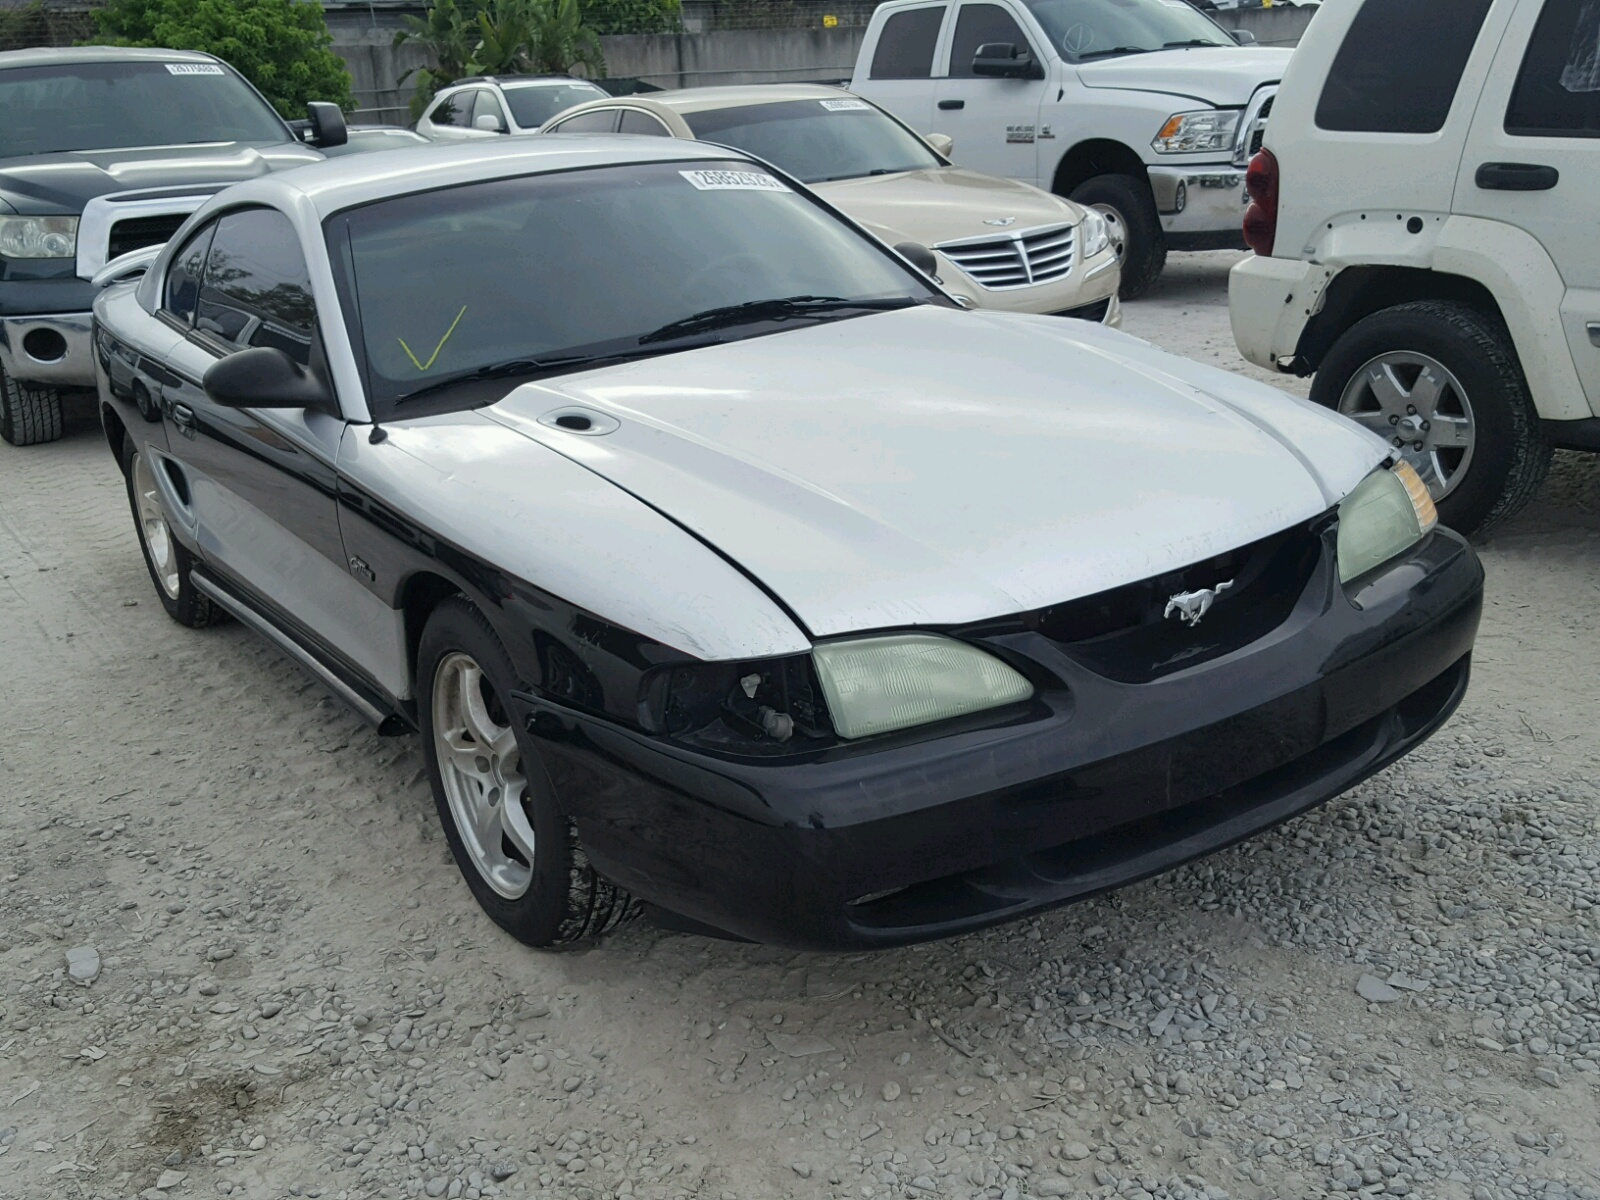 1998 ford mustang gt for sale at copart miami fl lot 26852928. Black Bedroom Furniture Sets. Home Design Ideas